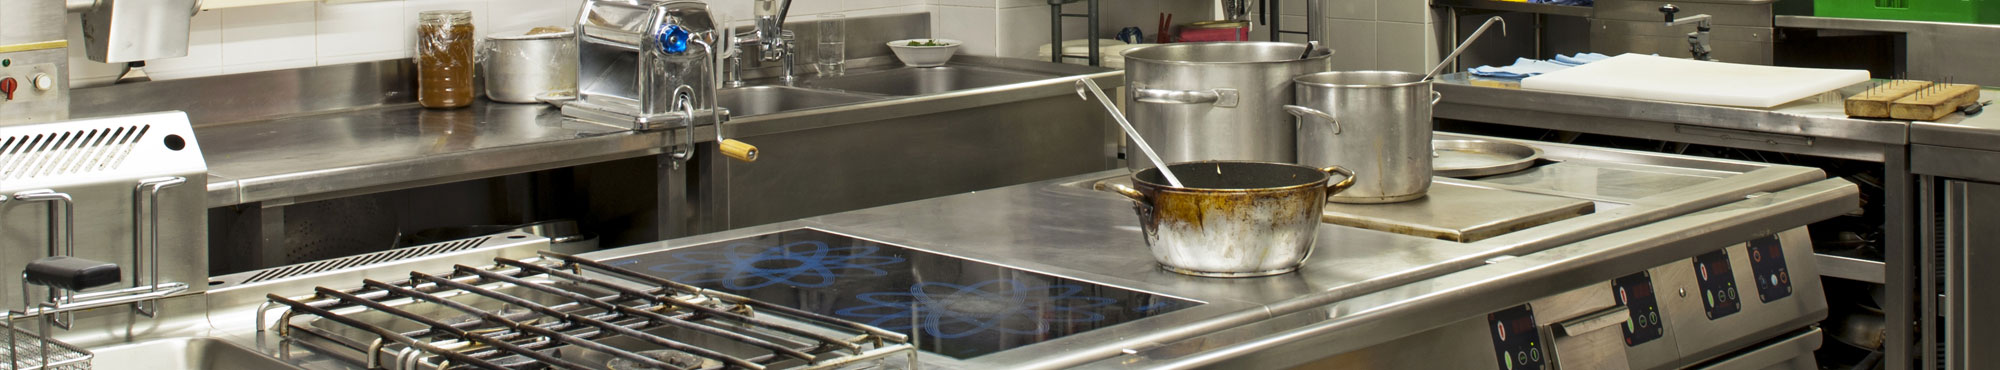 Extractor Cleaning Bristol